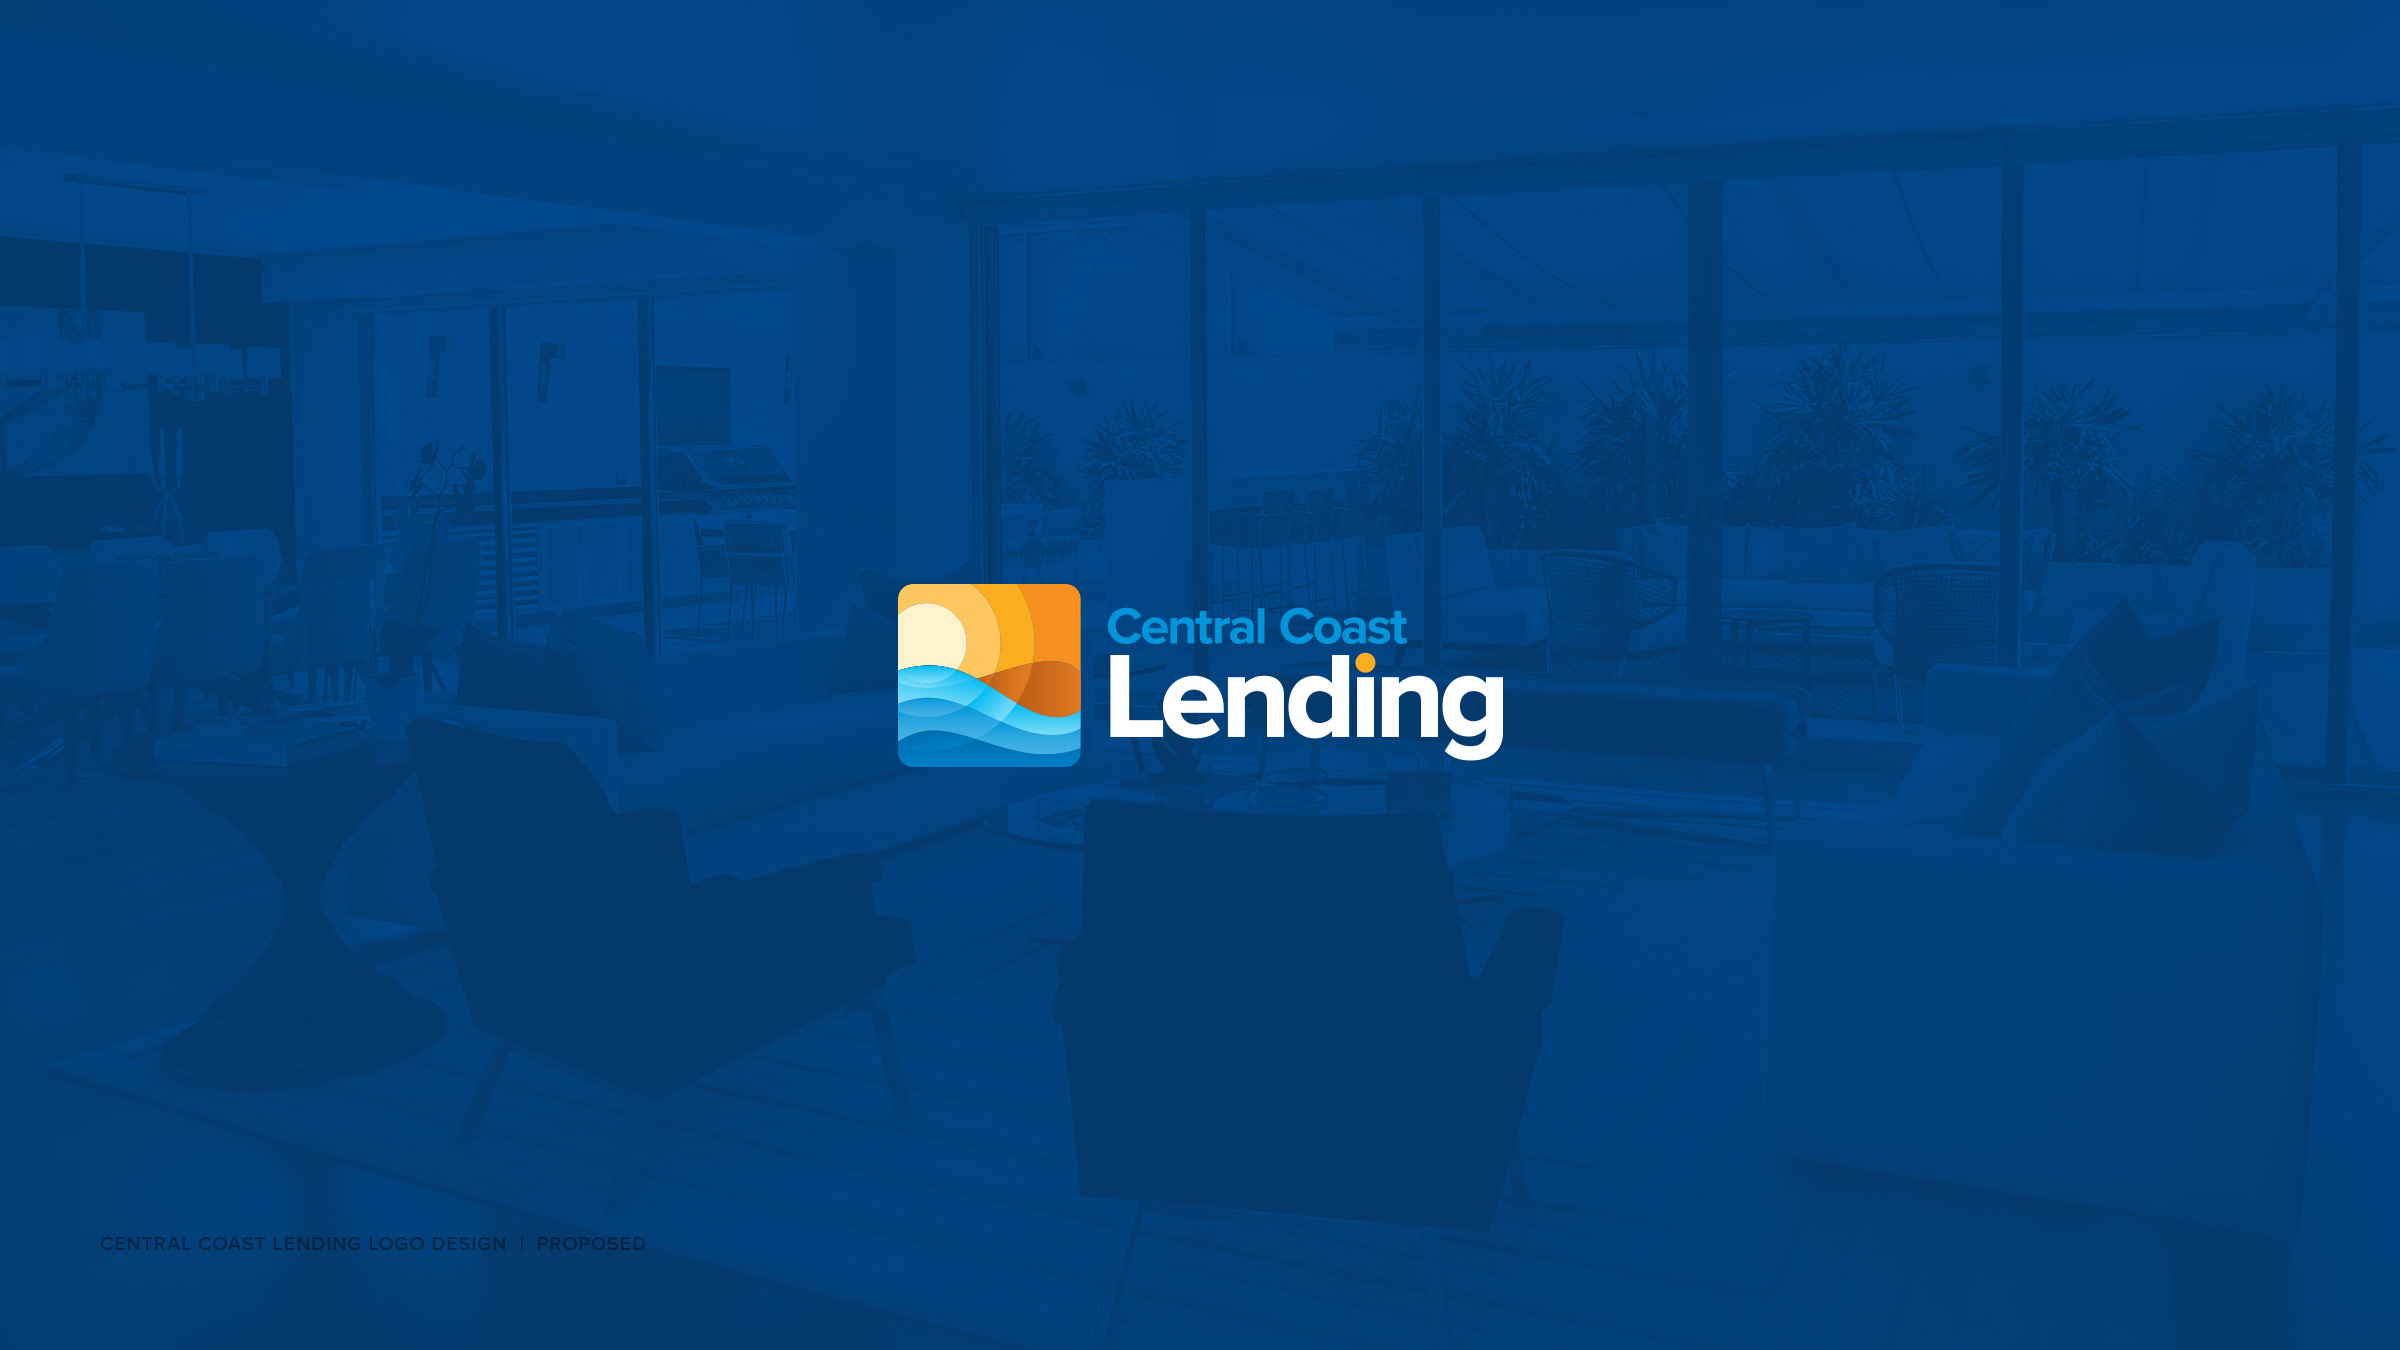 Logo-Design-Portfolio-v.1-Central-Coast-Lending